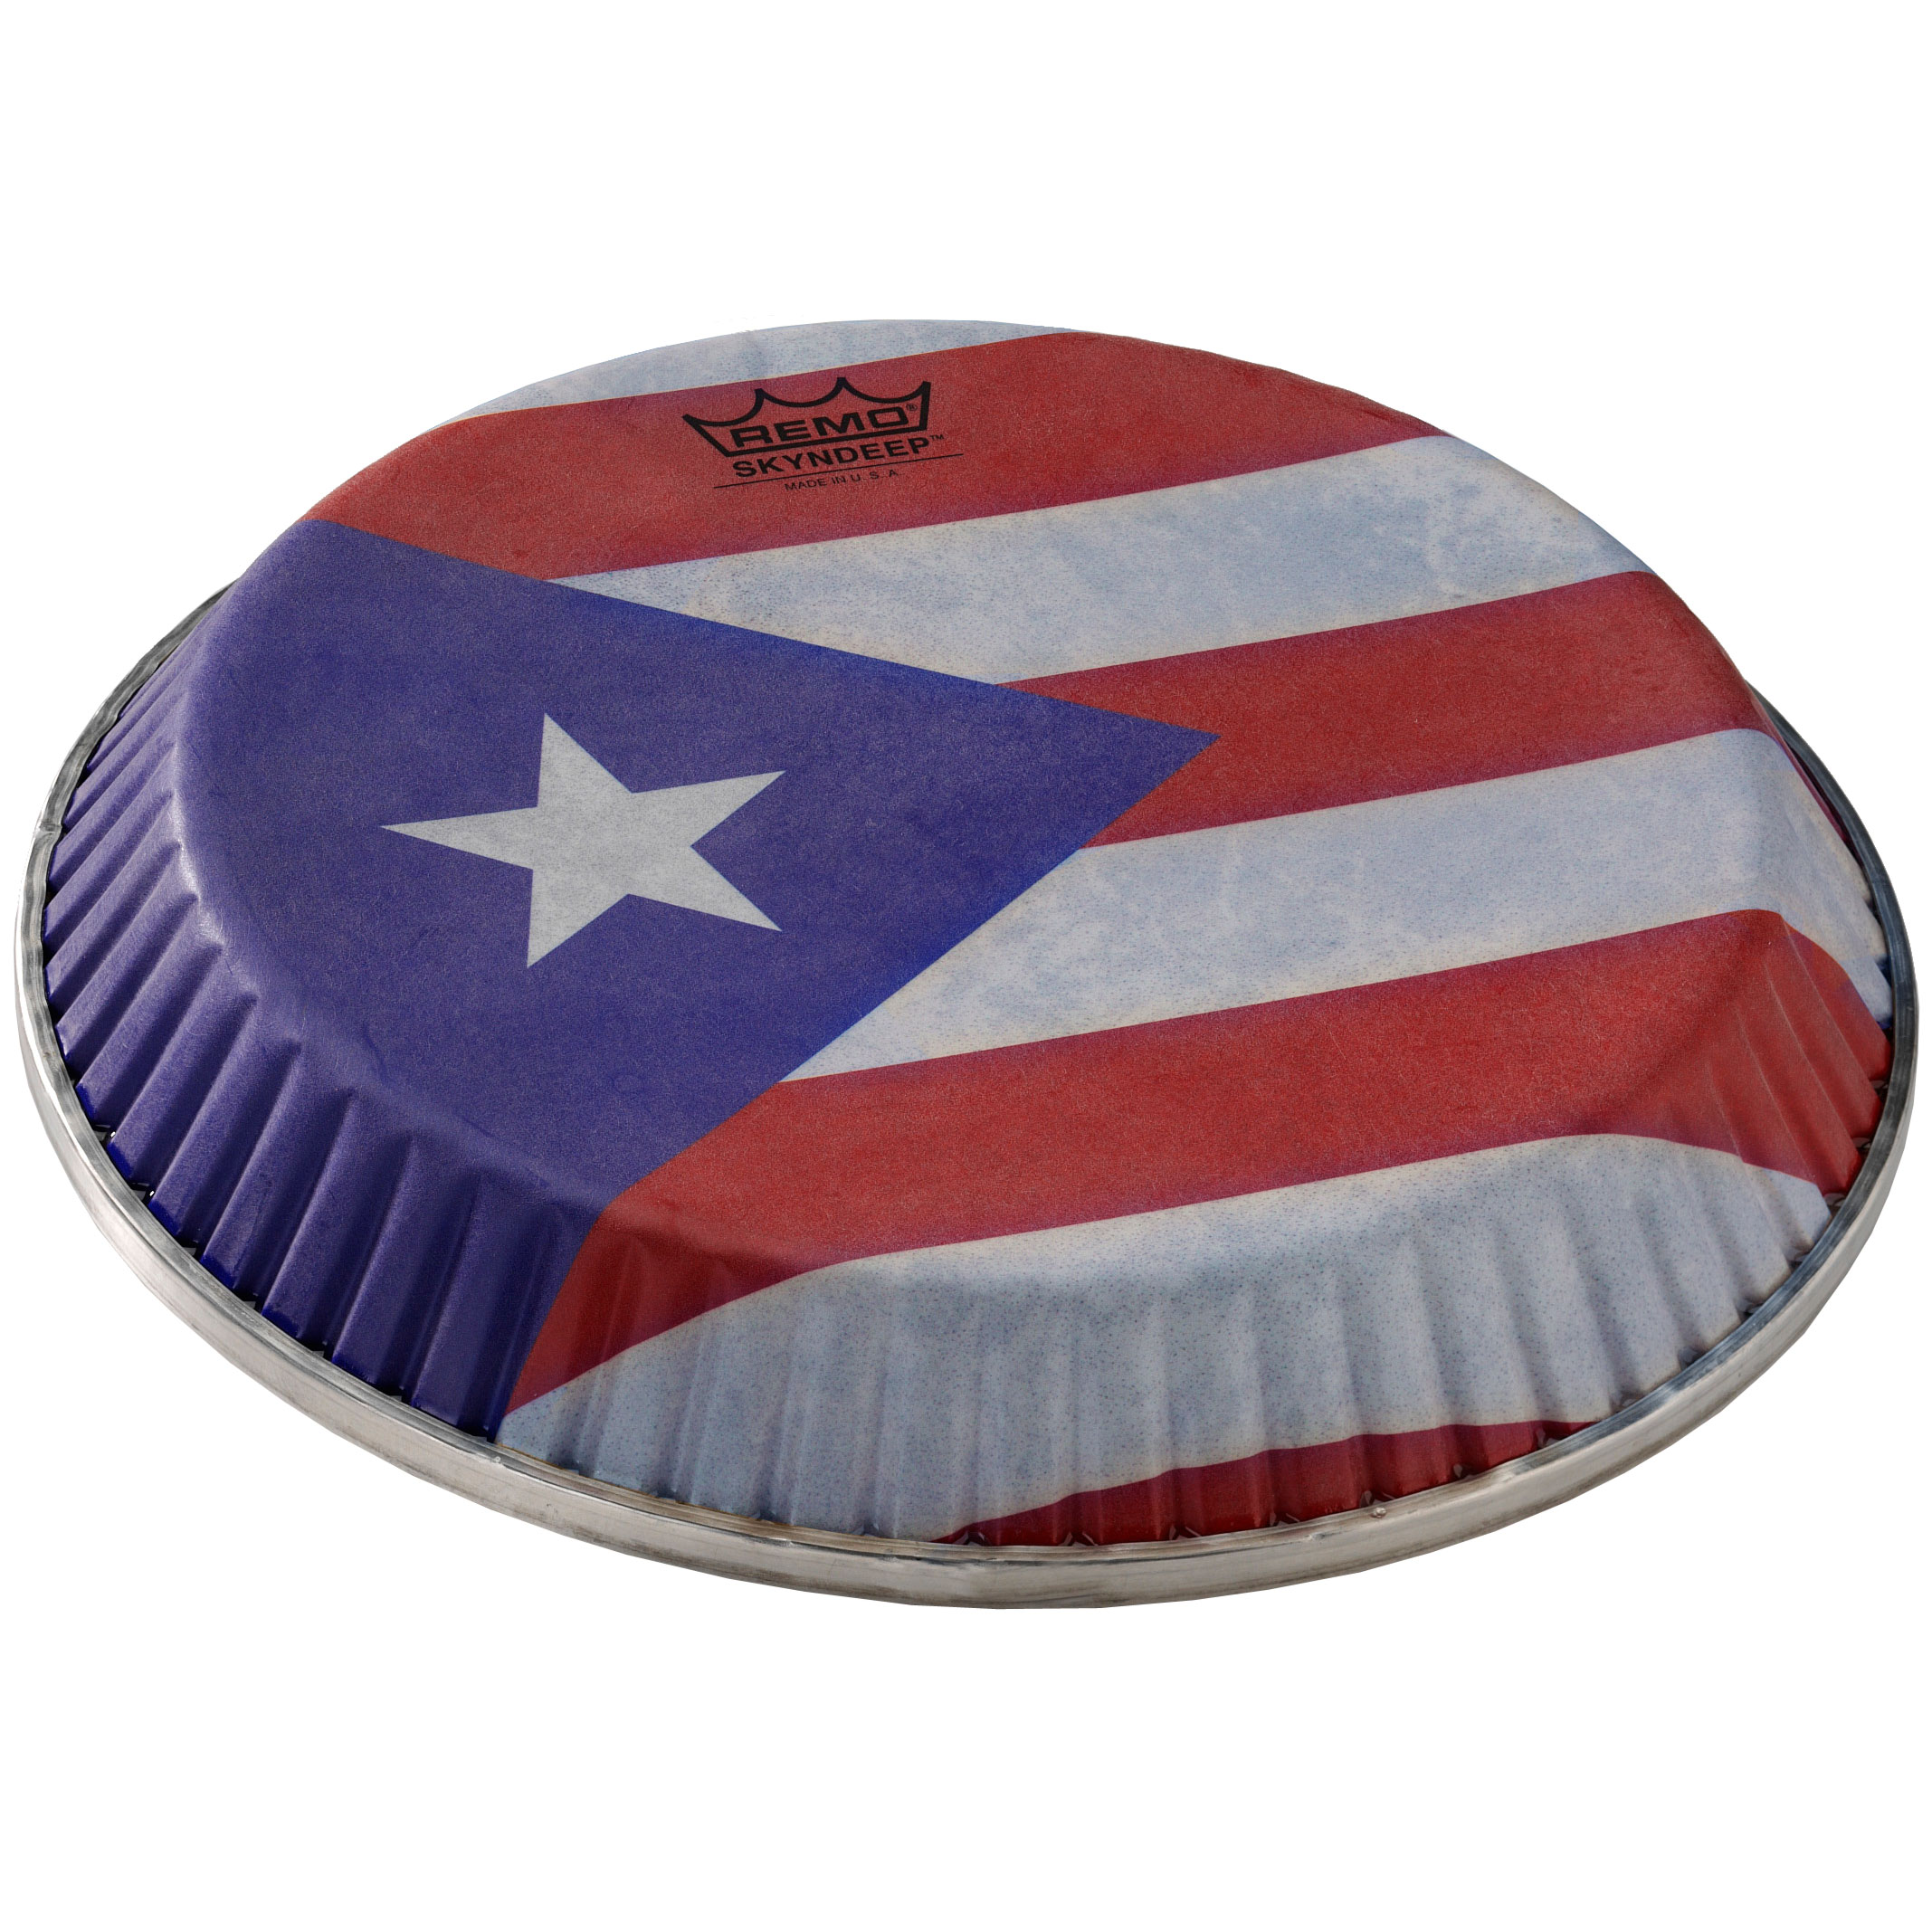 """Remo 12.5"""" Symmetry Skyndeep Conga Drum Head (D3 Collar) with Puerto Rican Flag Graphic"""